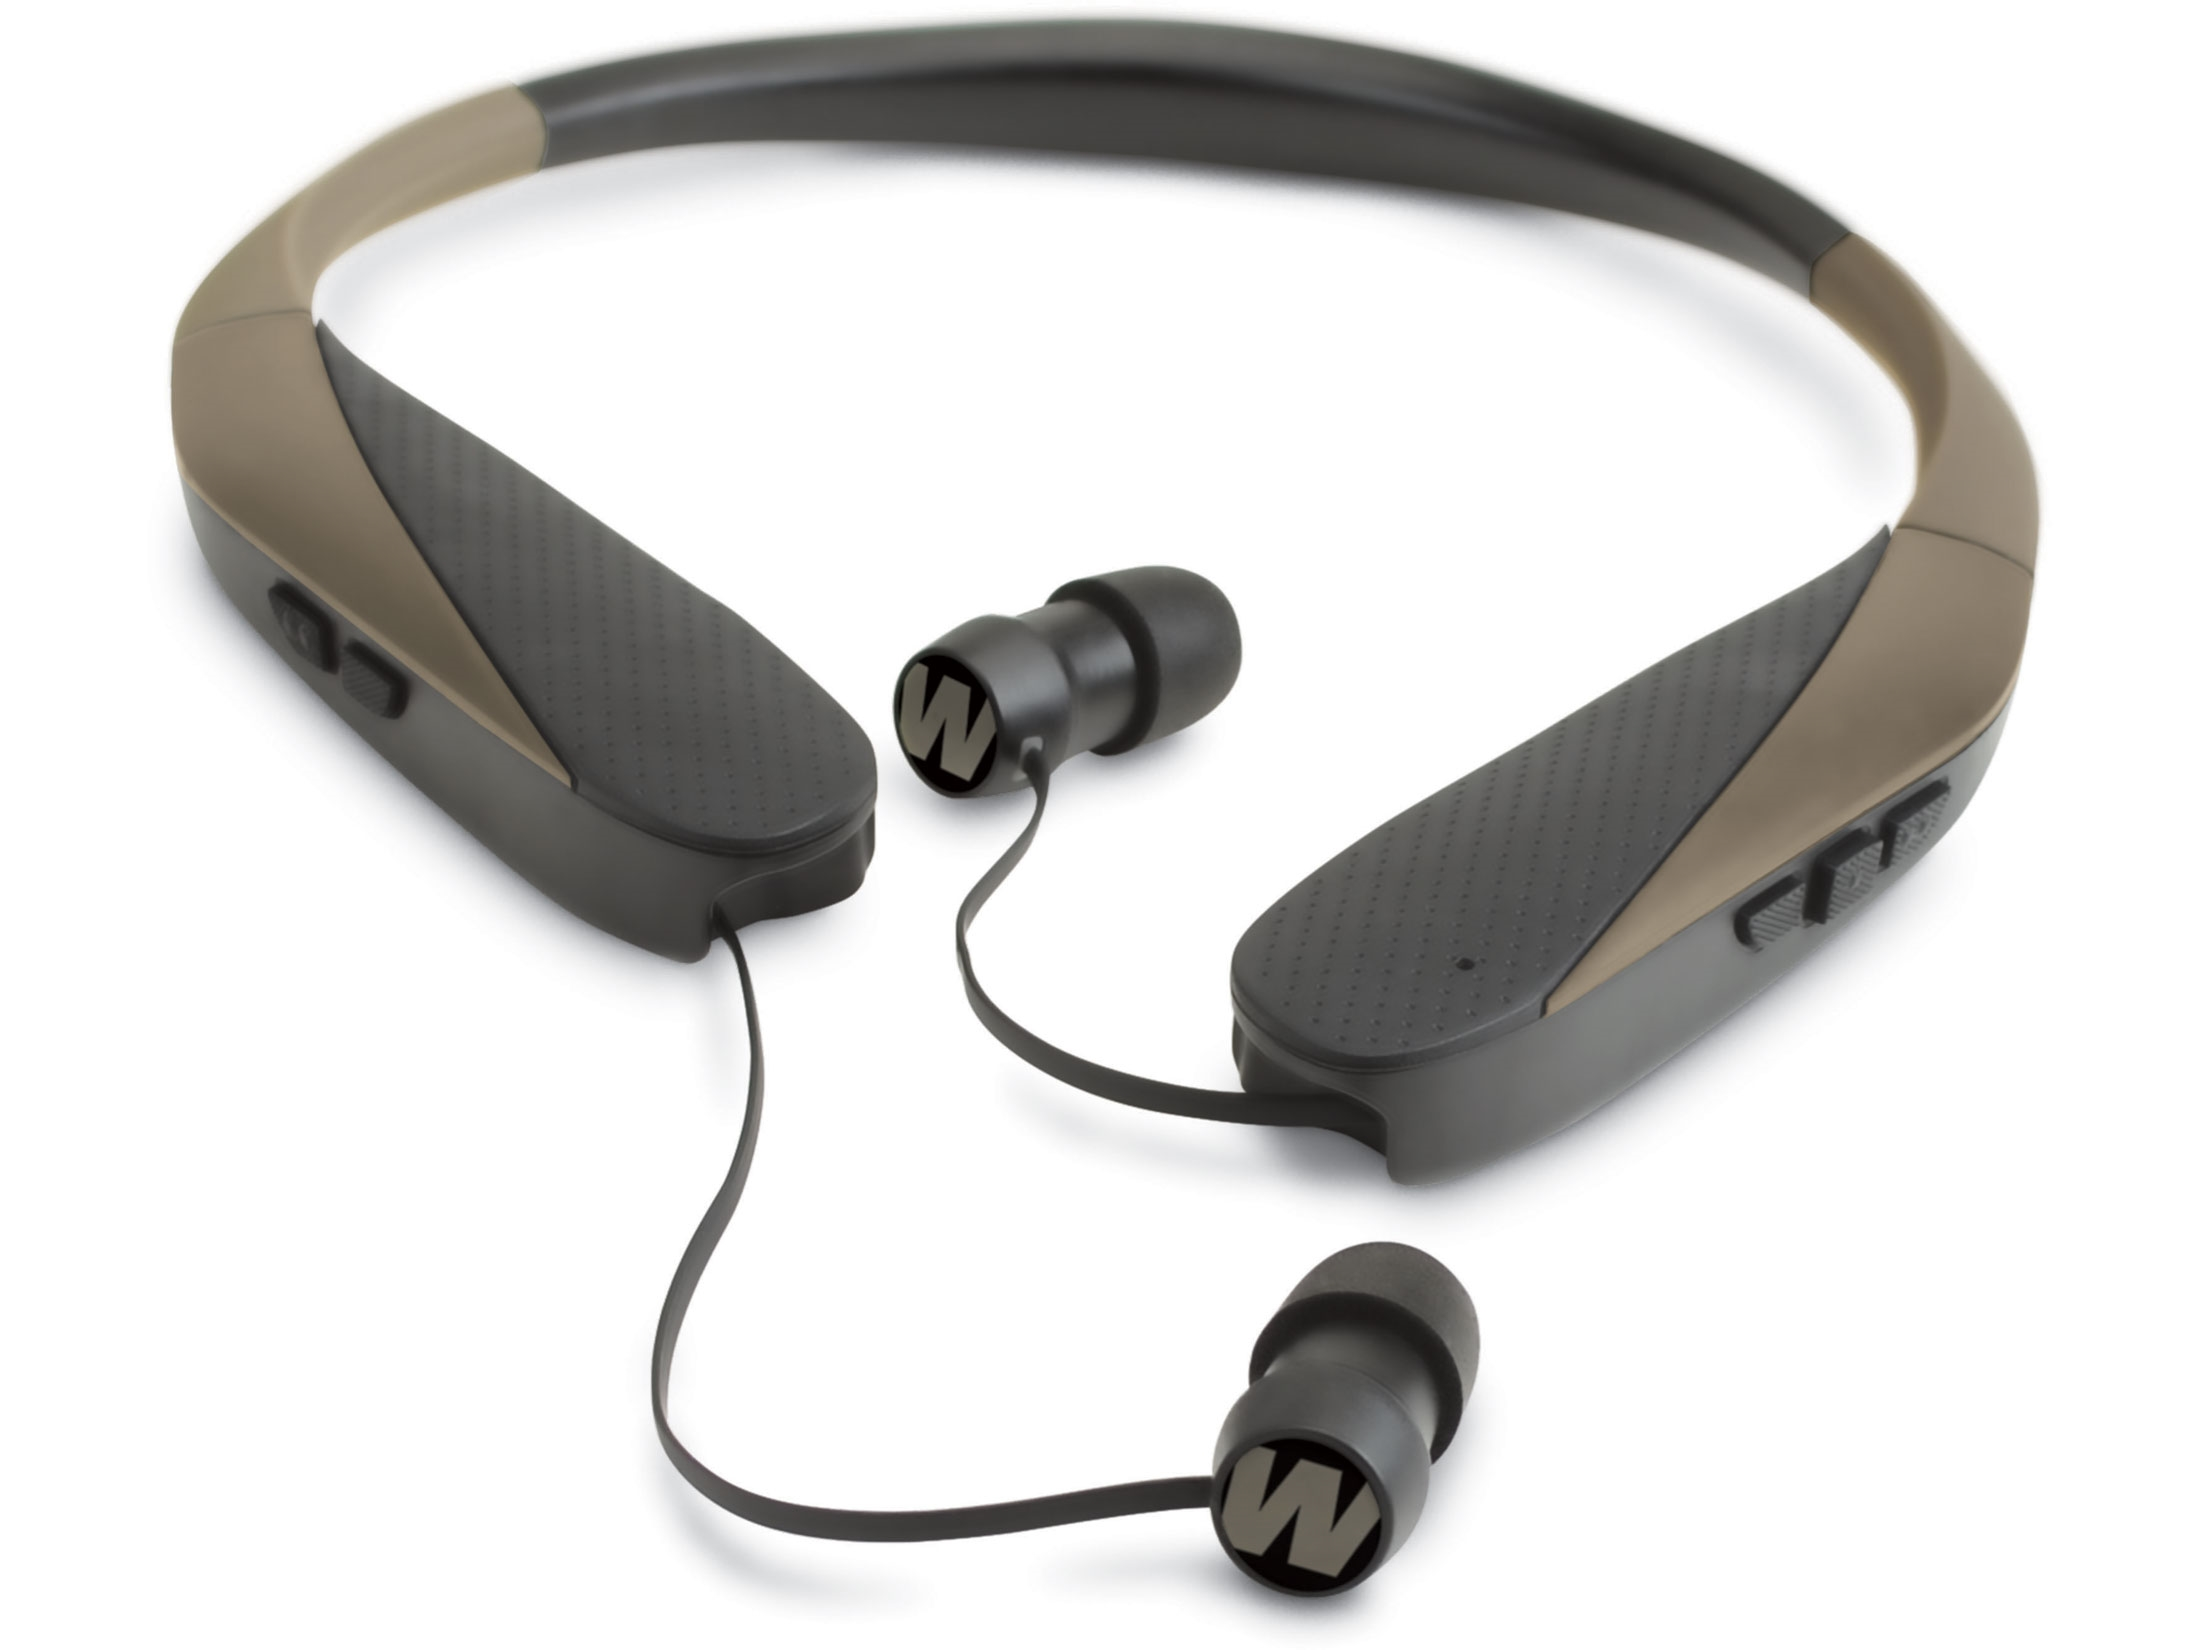 best ear buds hearing protection - Hi-Point Reviews & Range Reports